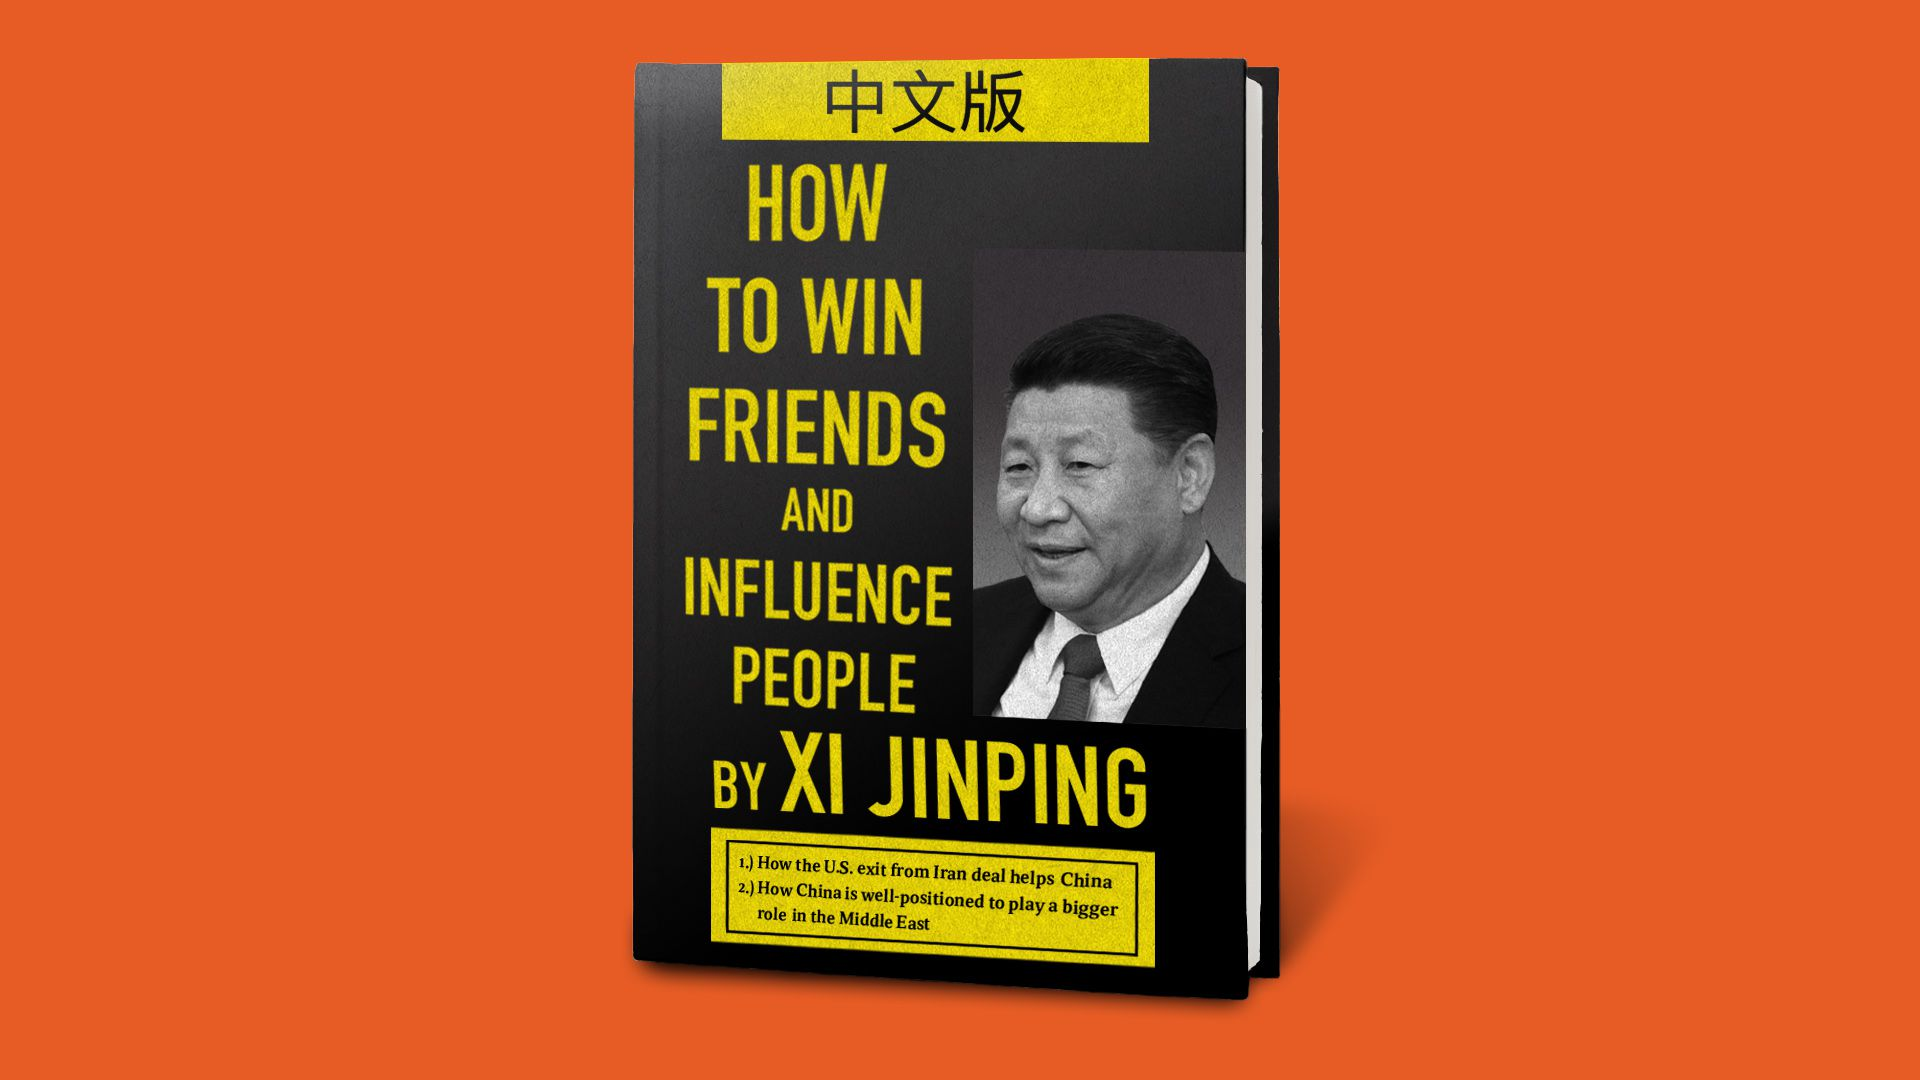 A book cover showing Xi Jinping